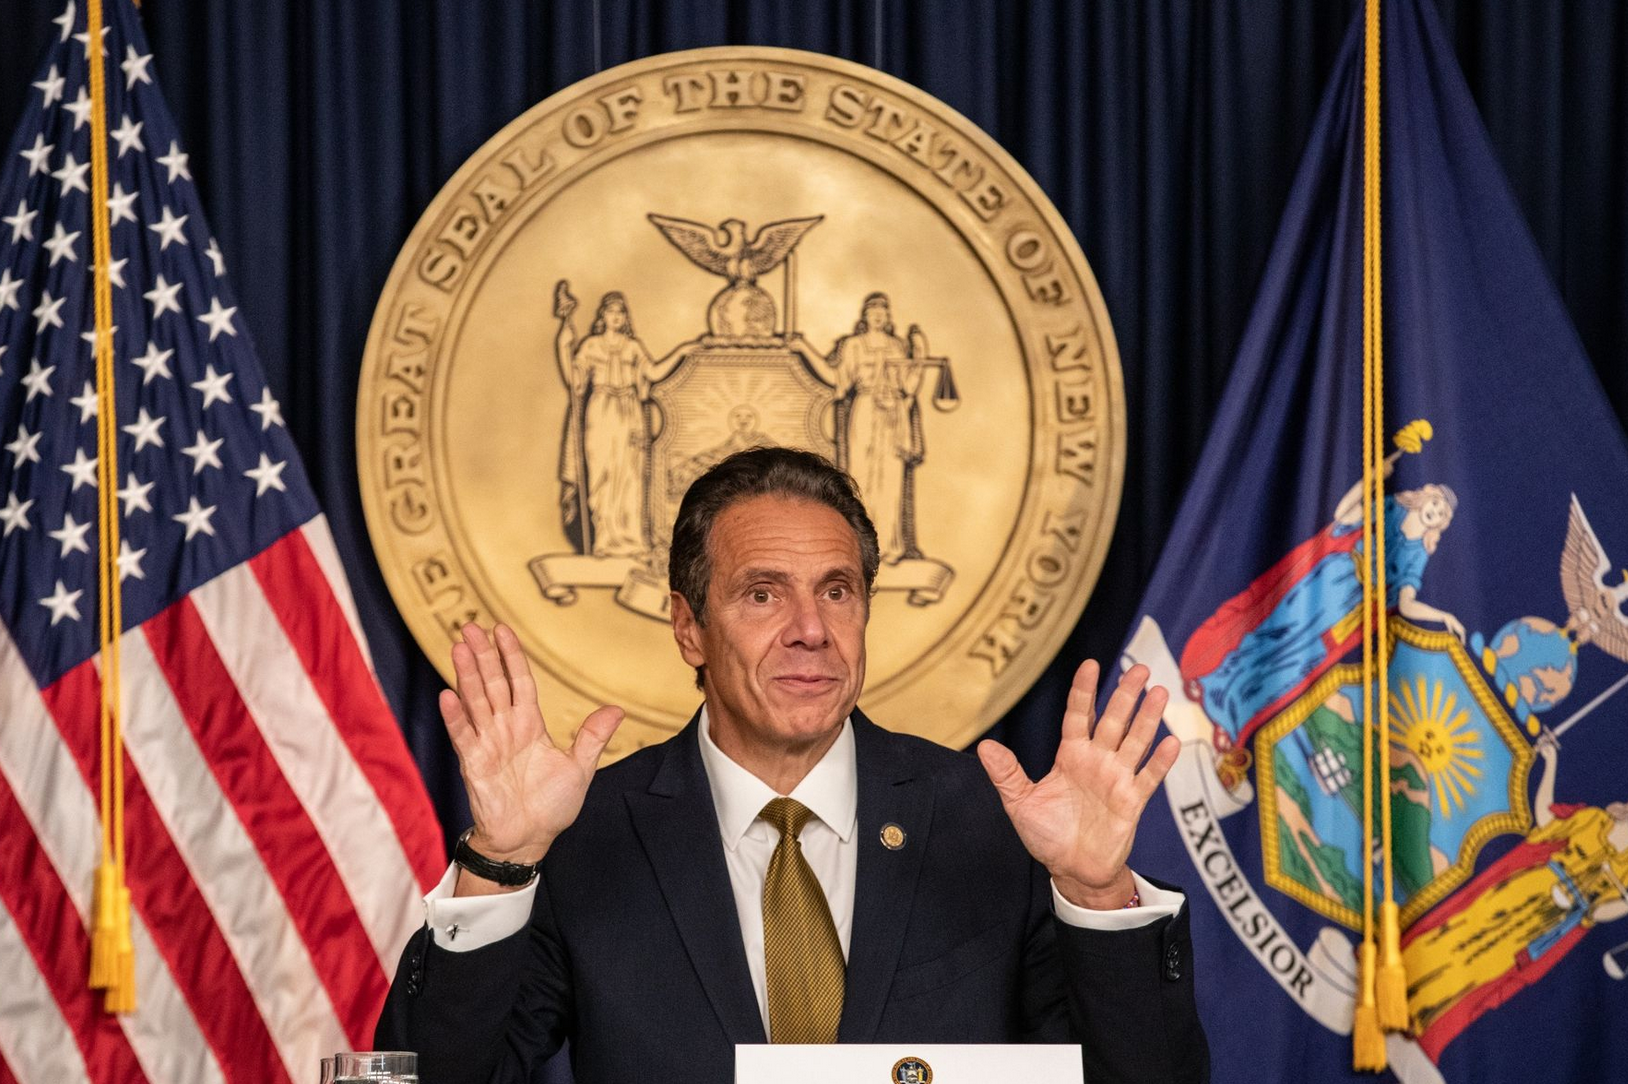 Governor Cuomo Gets Emmy For 'Leadership' During Pandemic. Trump Gets Nada, Zip, Bumpkis, Zelch!!